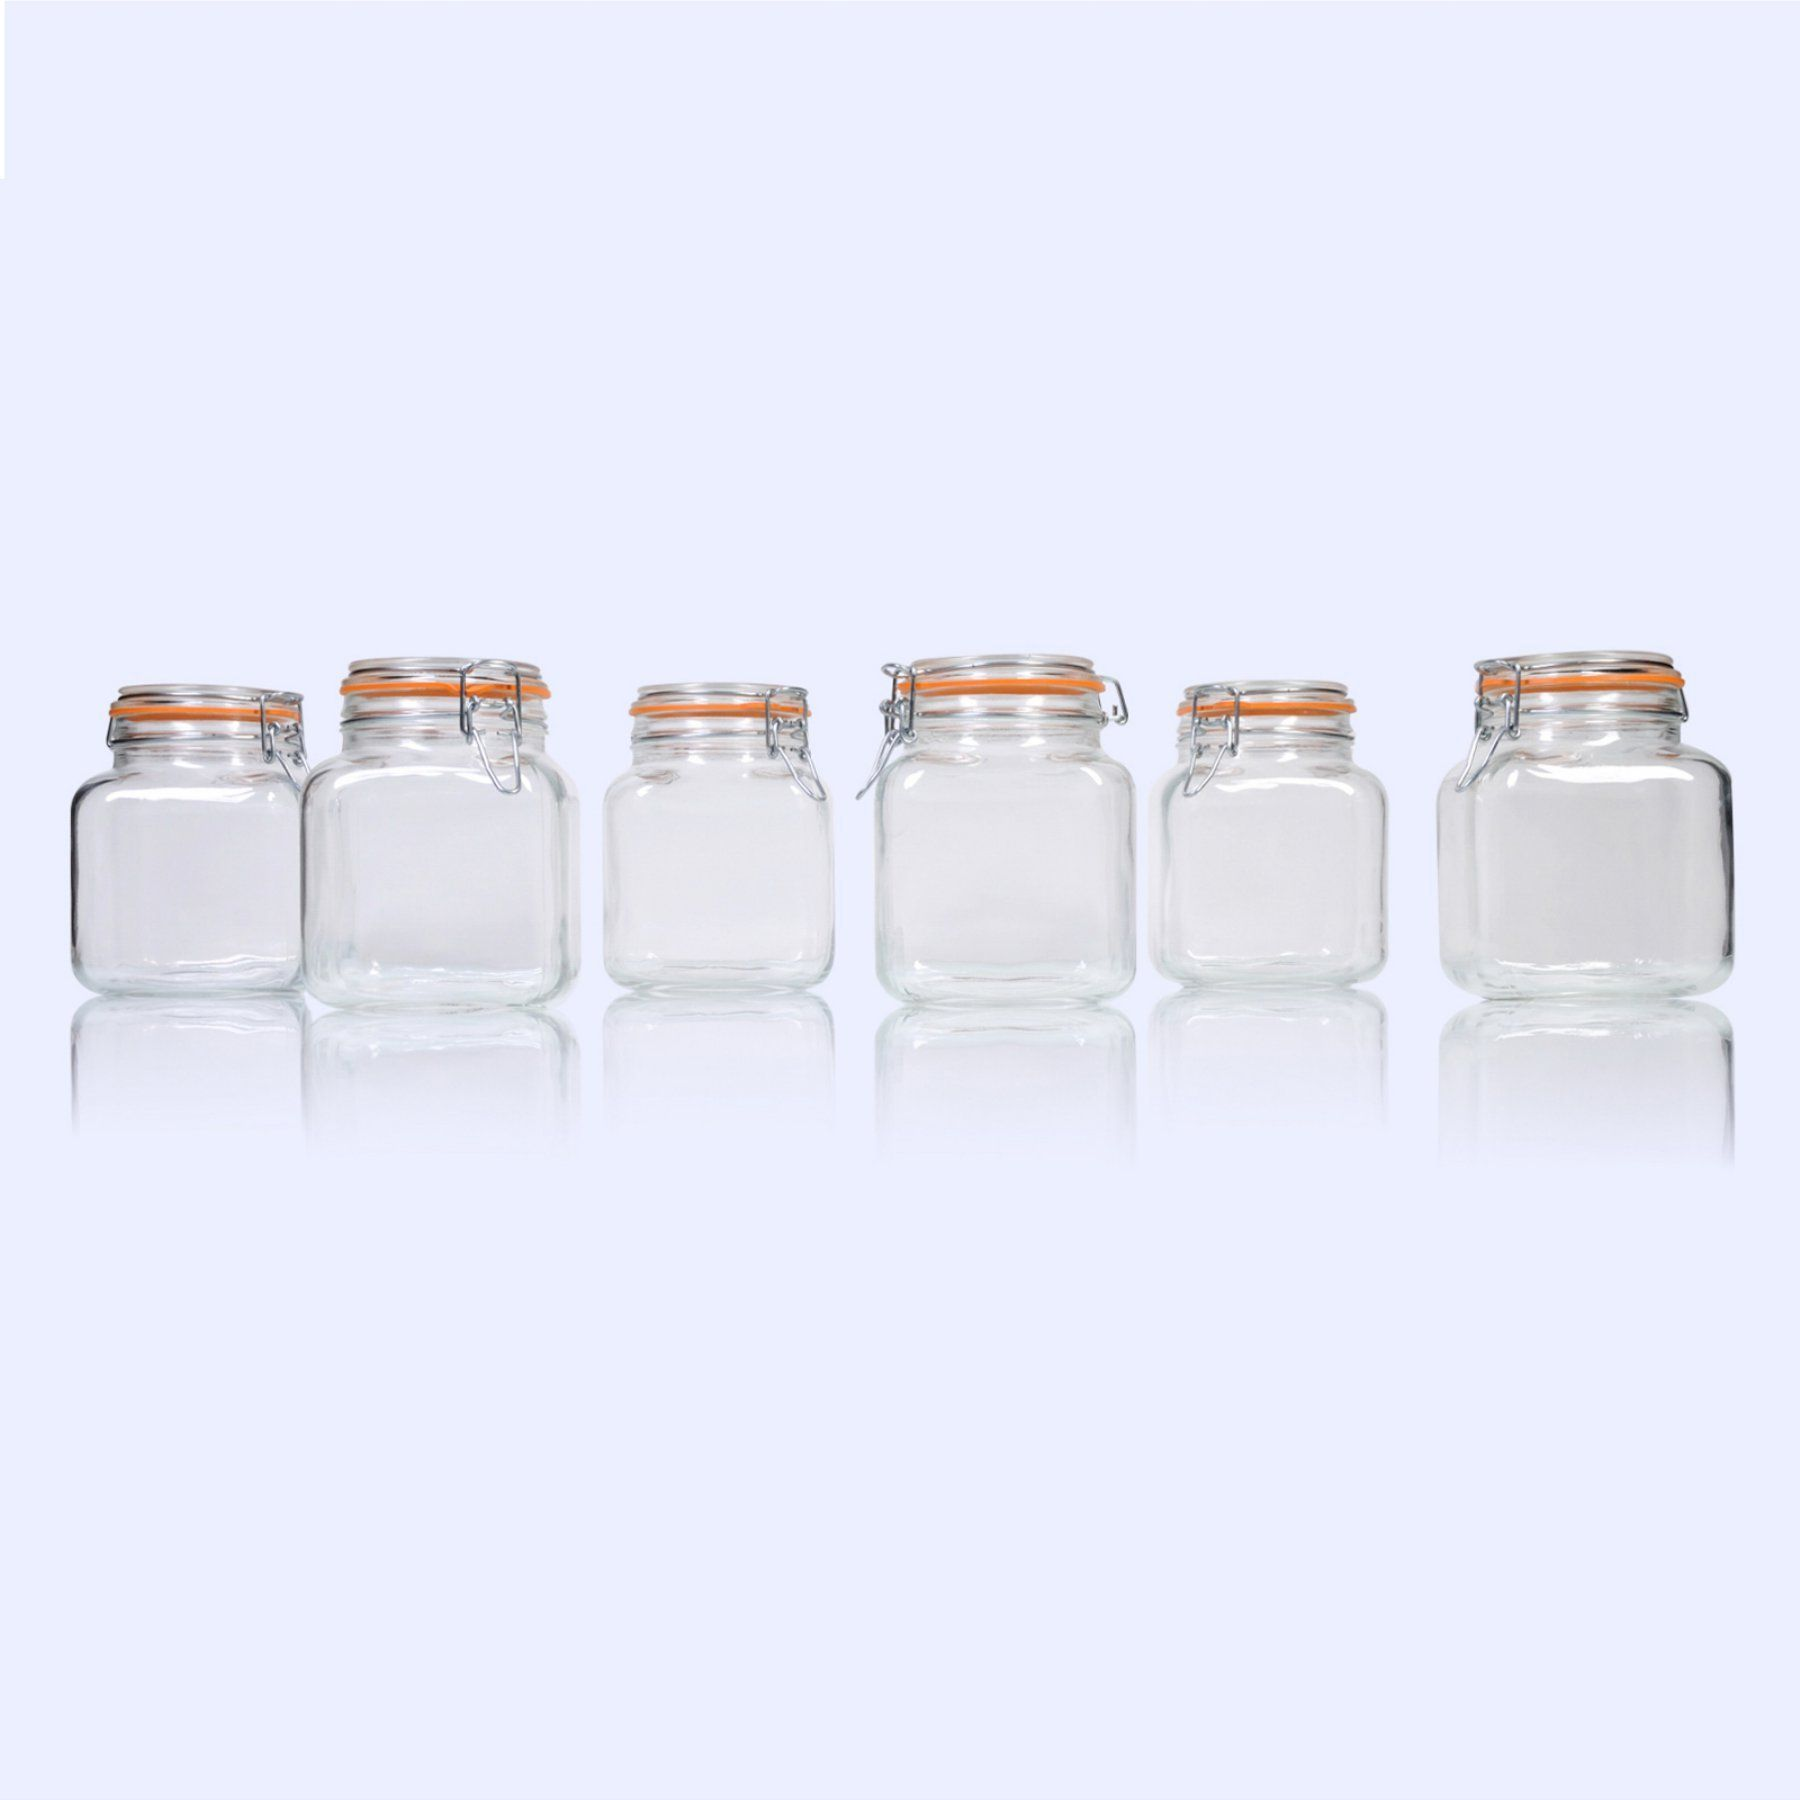 Kitchen canisters glass  Global Amici Borgonovo Hermetic Jar  Set of   ZABSR  Products